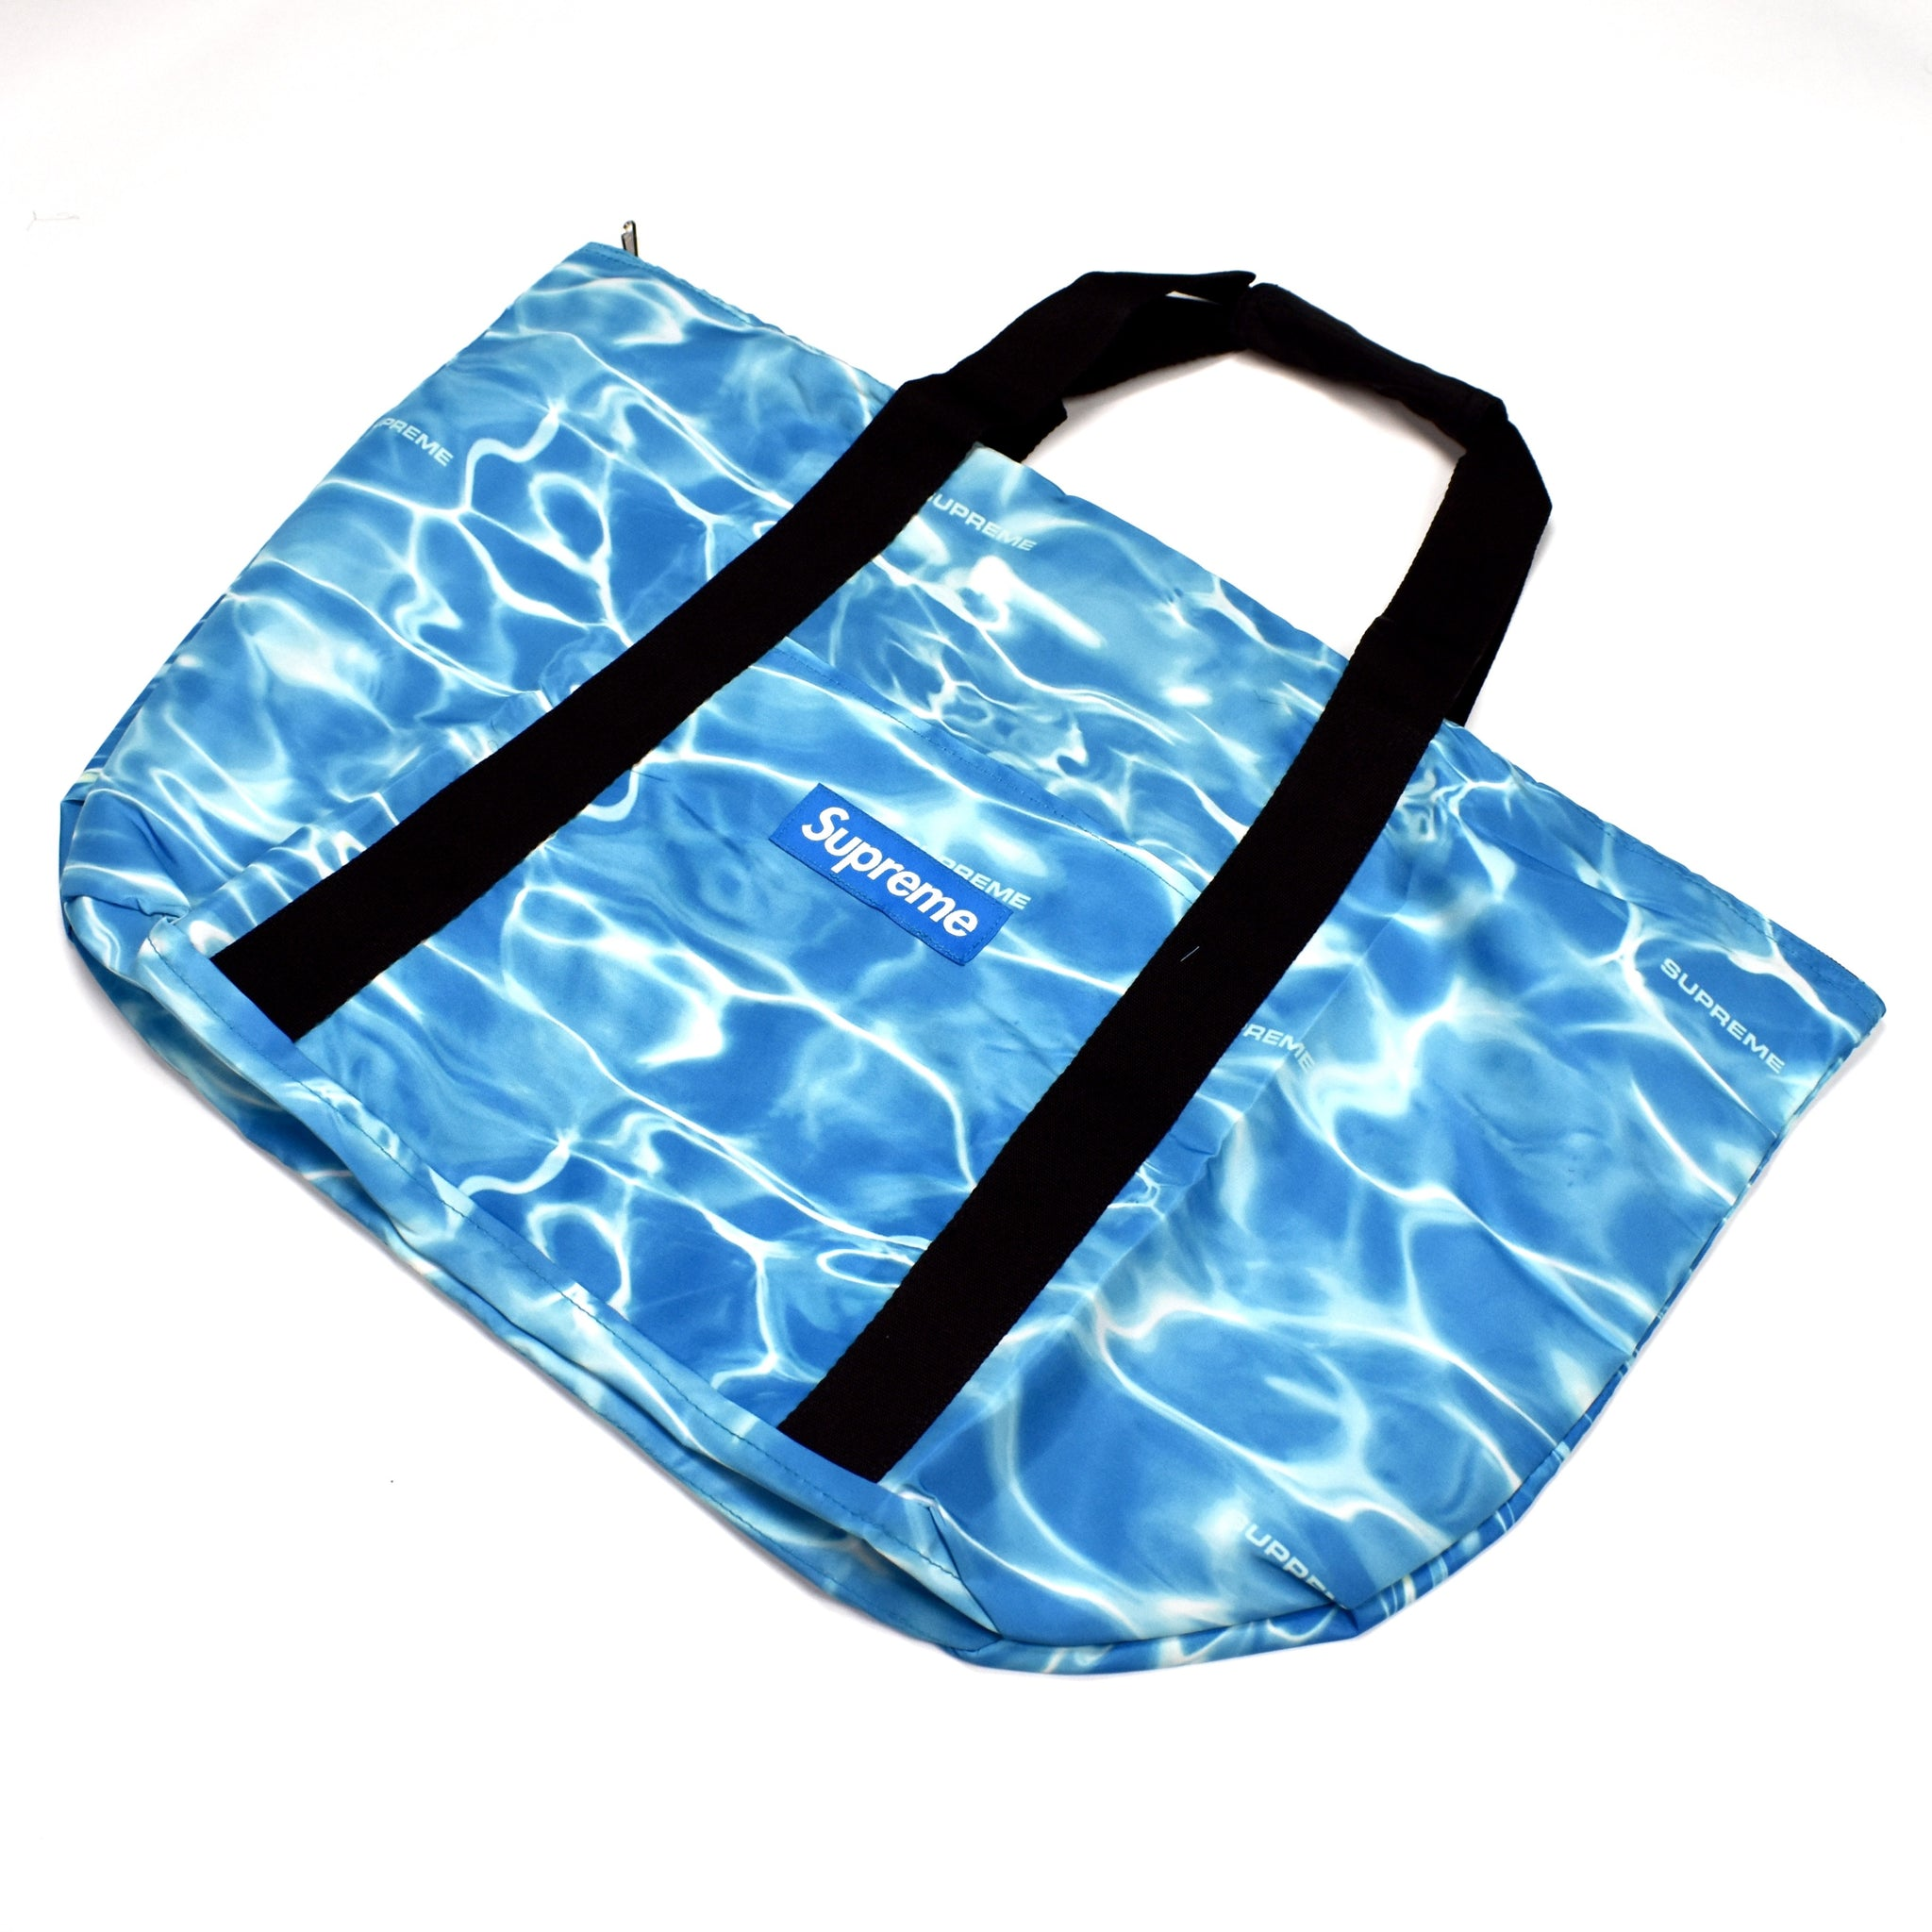 Supreme - Blue Box Logo Ripple Tote